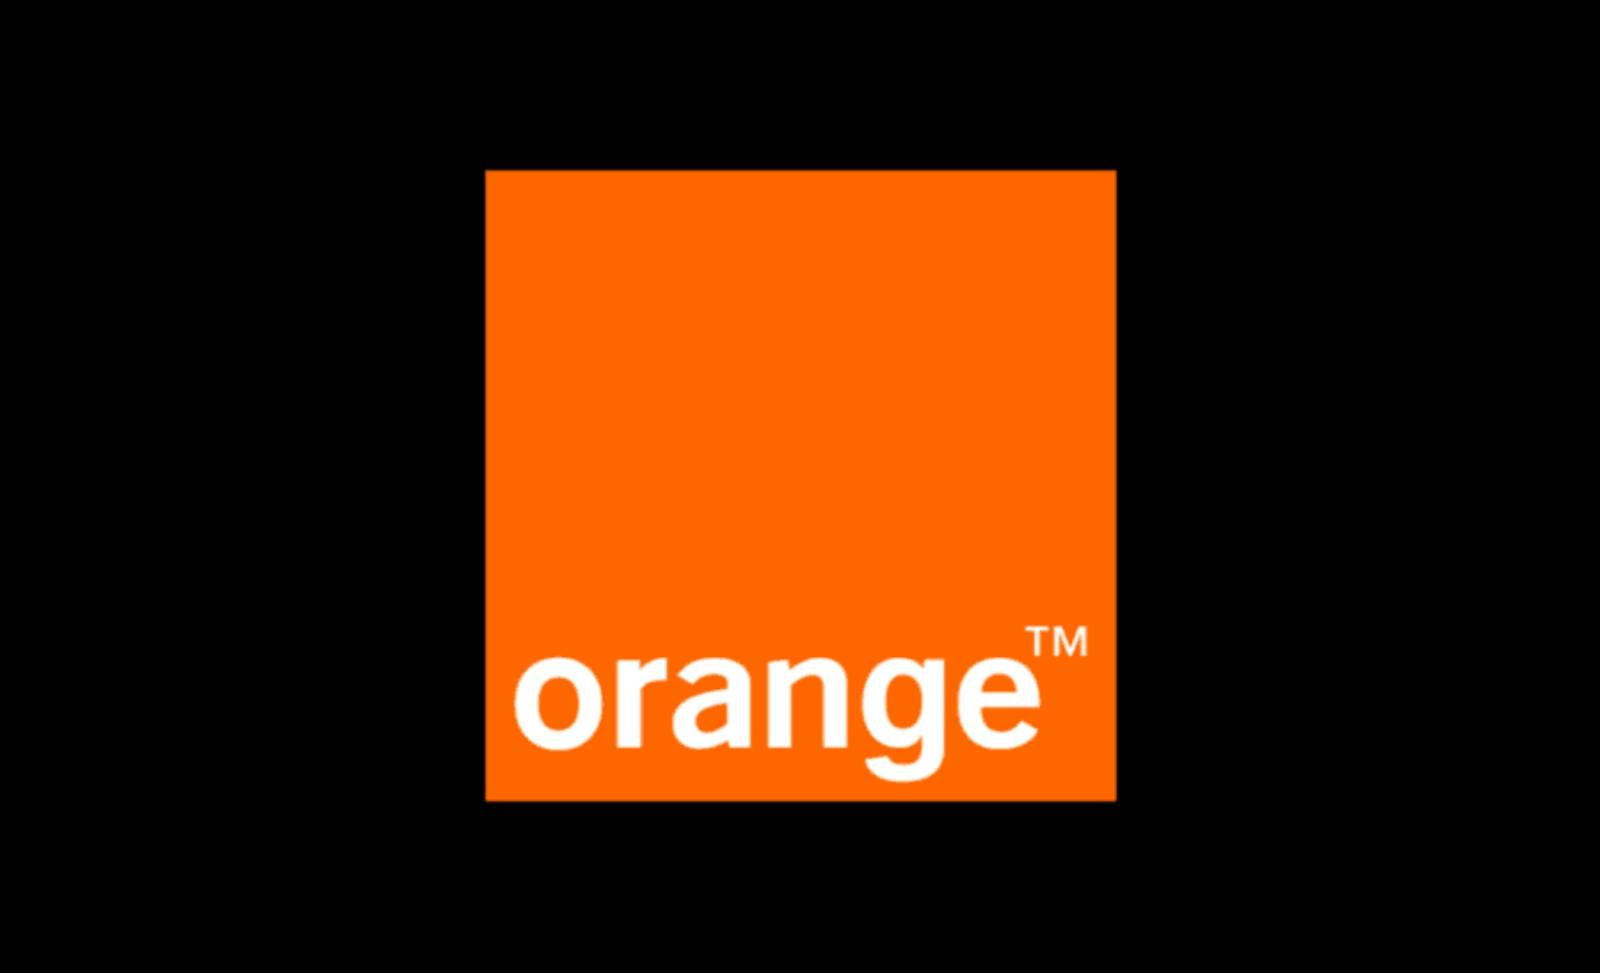 Orange. Weekend-ul din 31 August are Telefoane Mobile Substantial Reduse